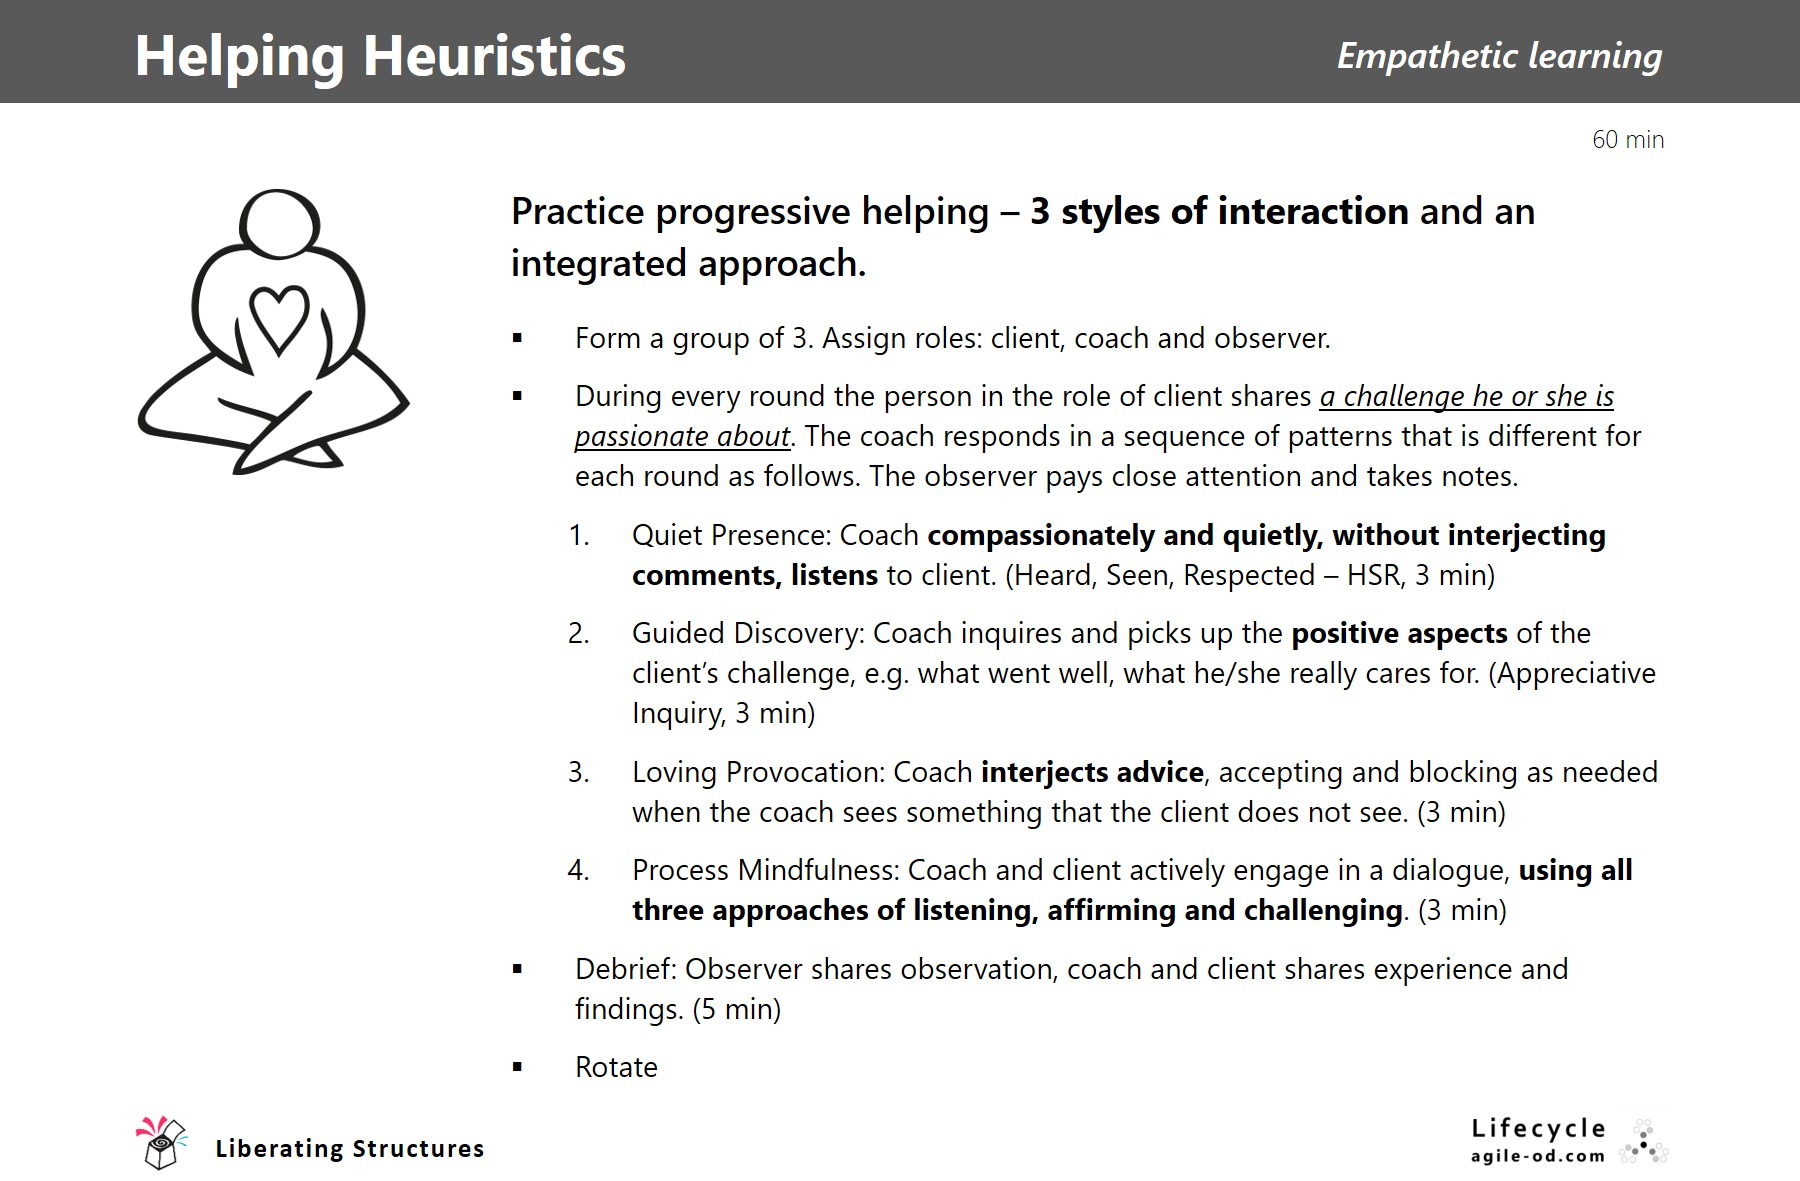 Helping Heuristics | Liberating Structures | Lifecycle | agile-od.com